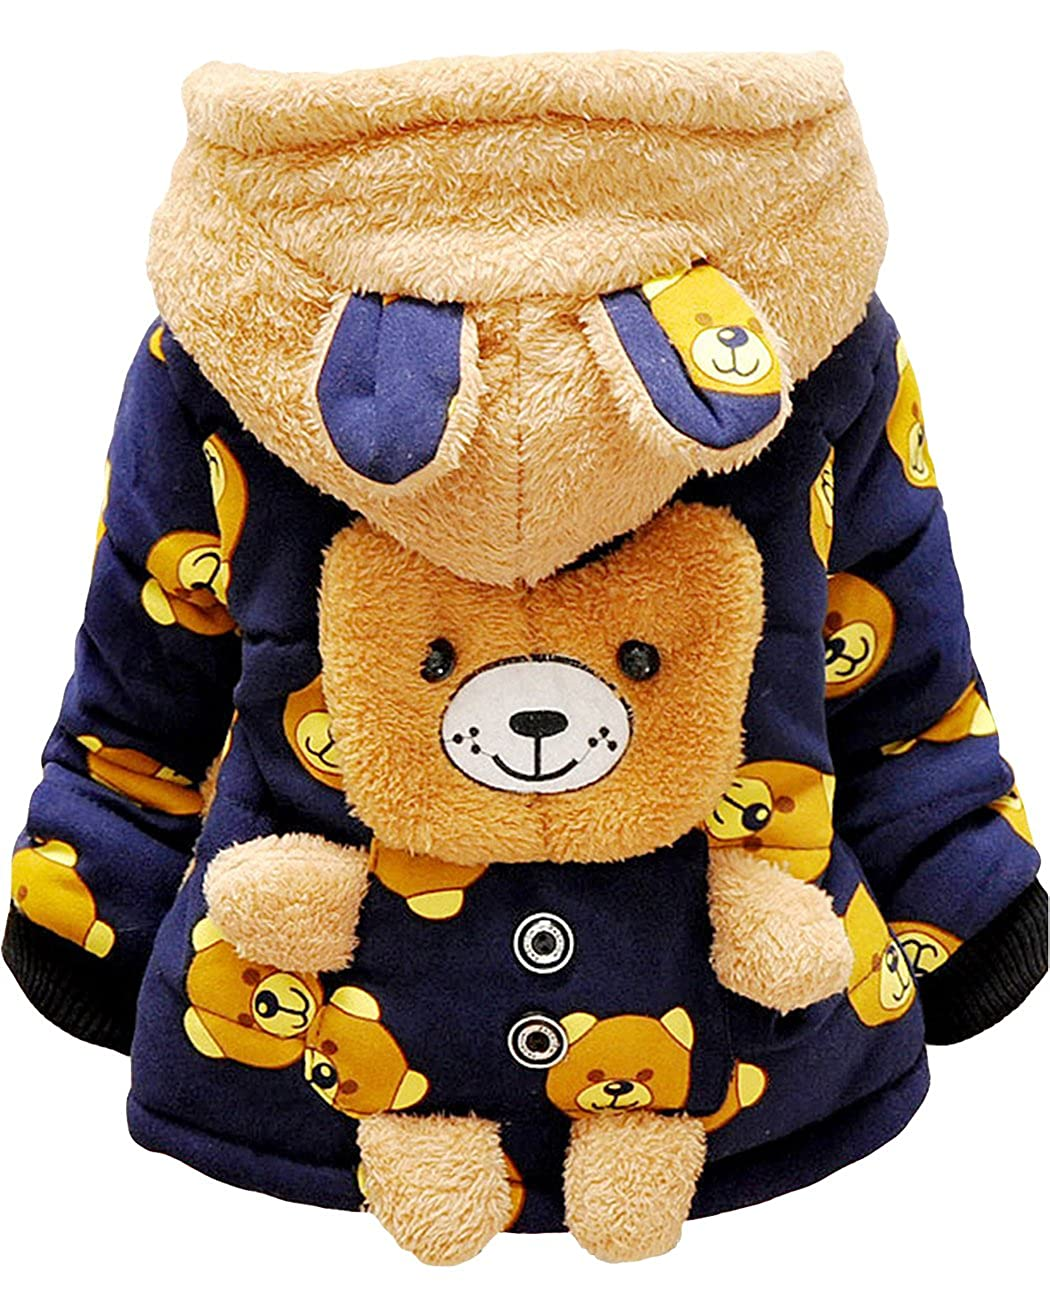 Baby Boys Cute Bear Hoodie Coats Winter Jackets Ears Outerwear for 9 12 Months 1 2 3 4 Year Kids